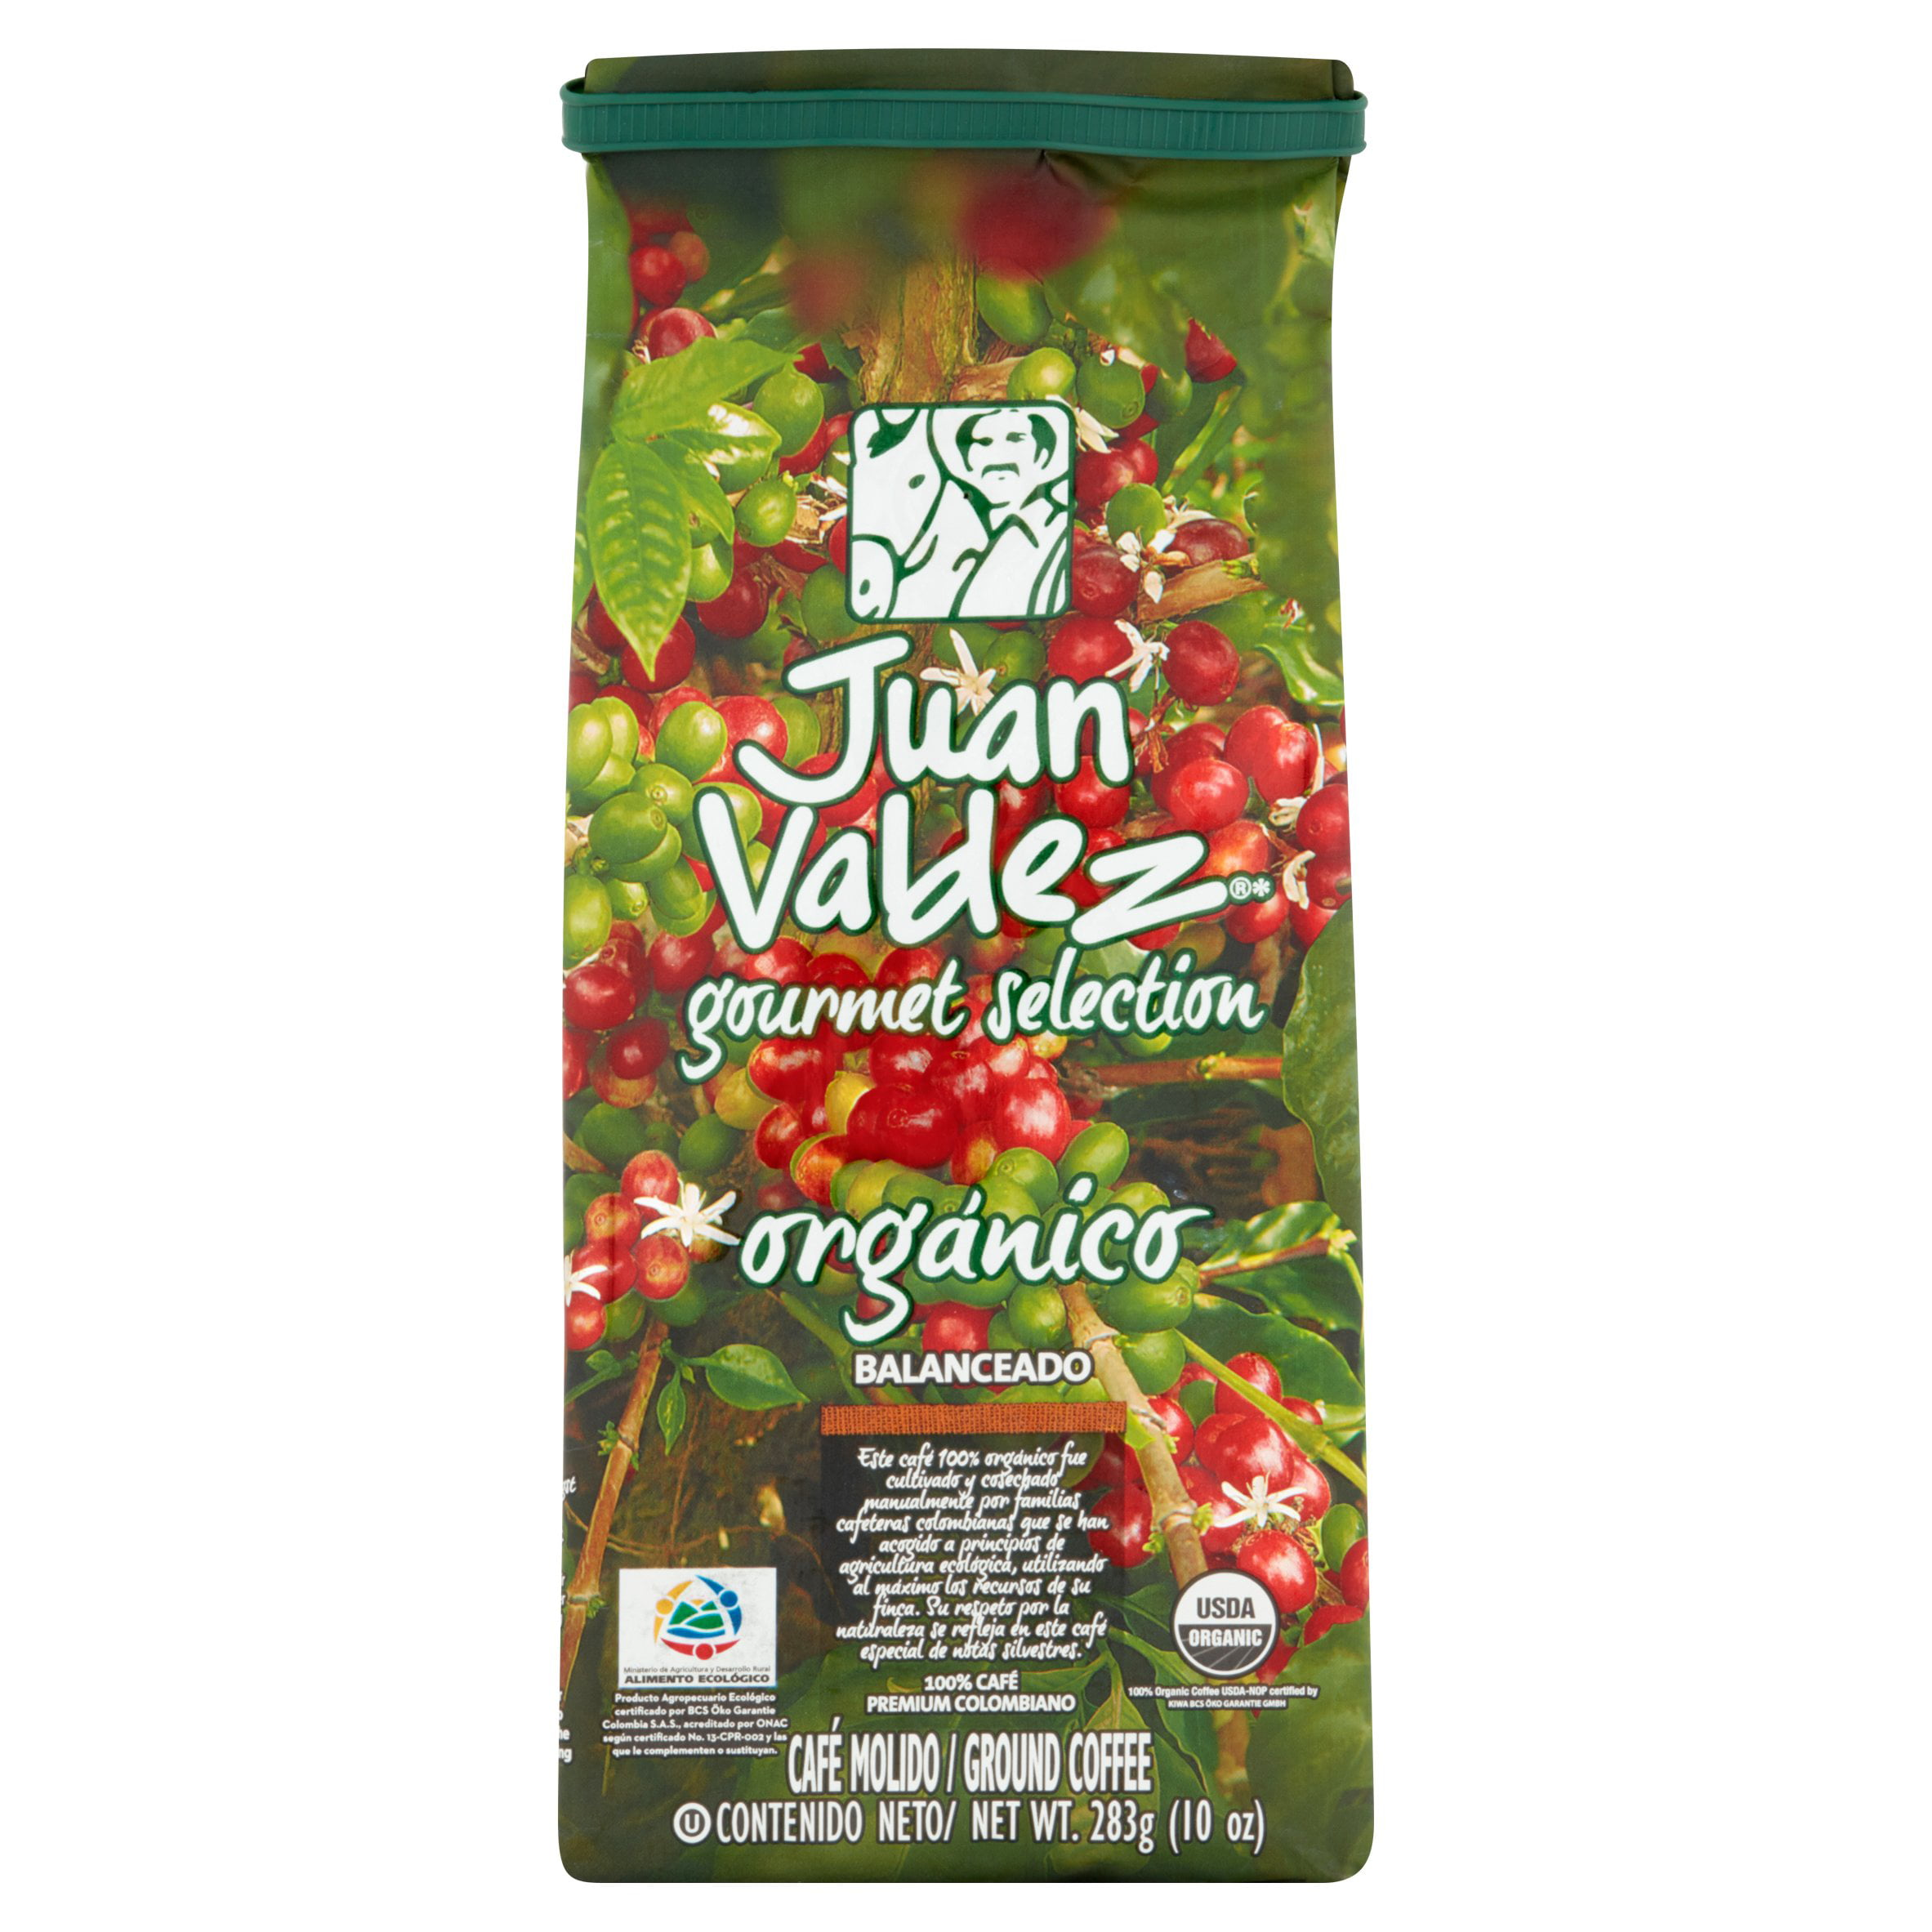 Juan Valdez Gourmet Selection Ground Coffee, 10 oz - Walmart.com